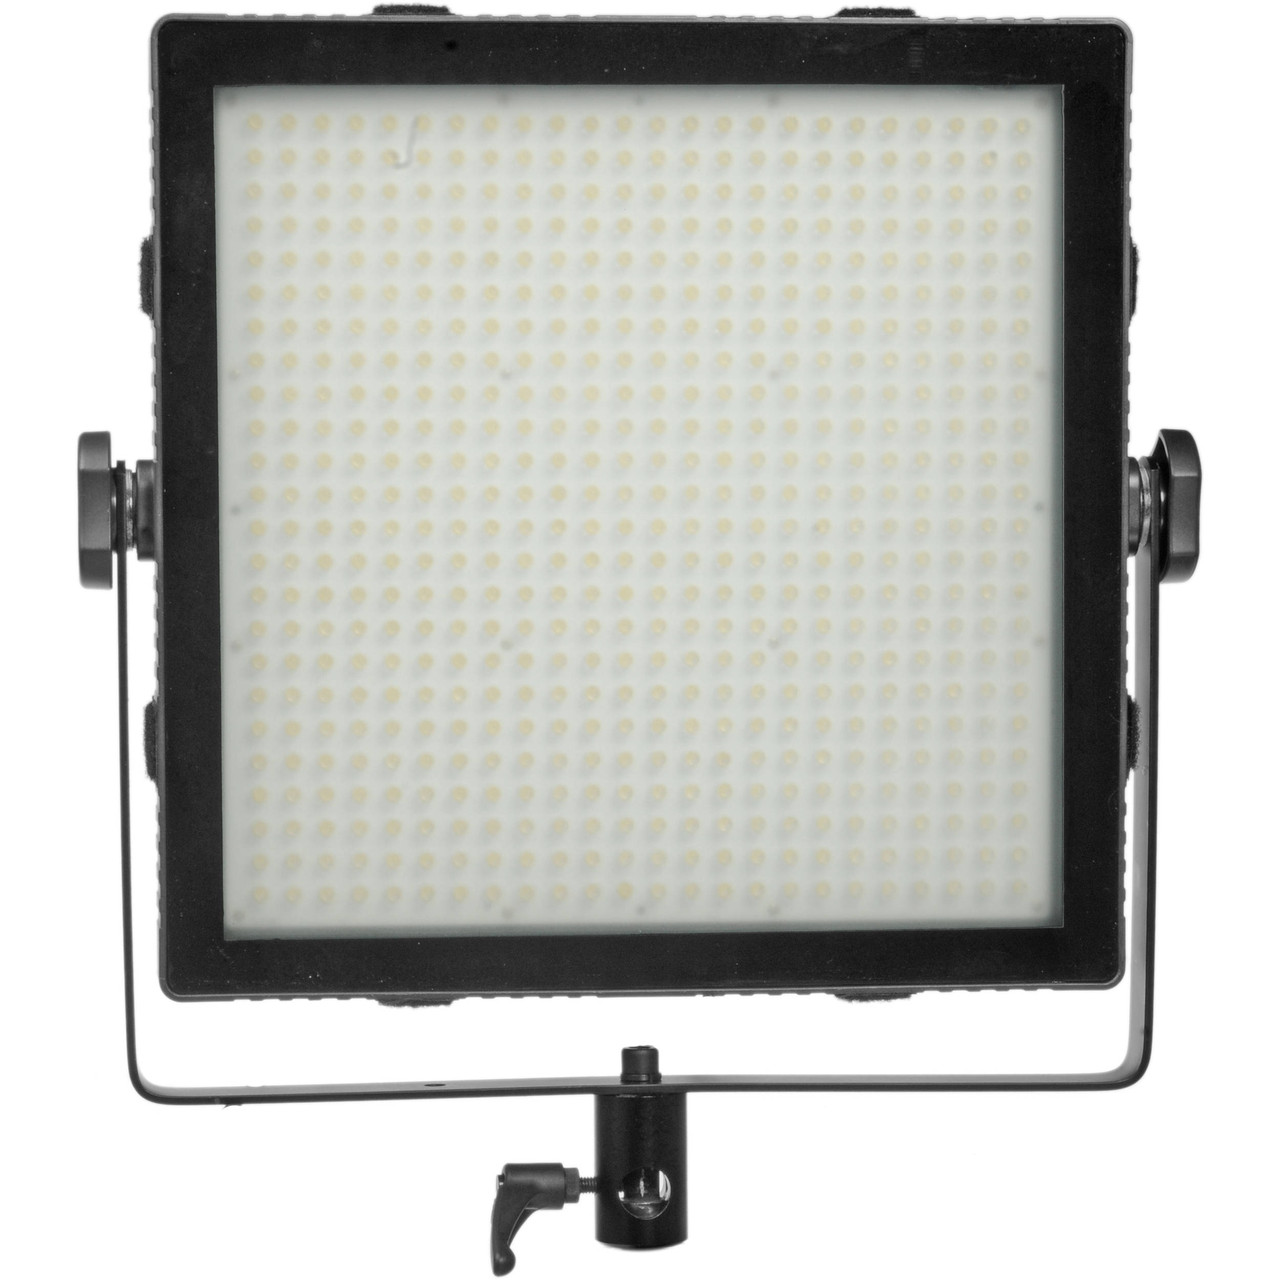 Dedolight Felloni Tecpro 30 Degree High Output Daylight LED Light (TP-LONI-D30HO)